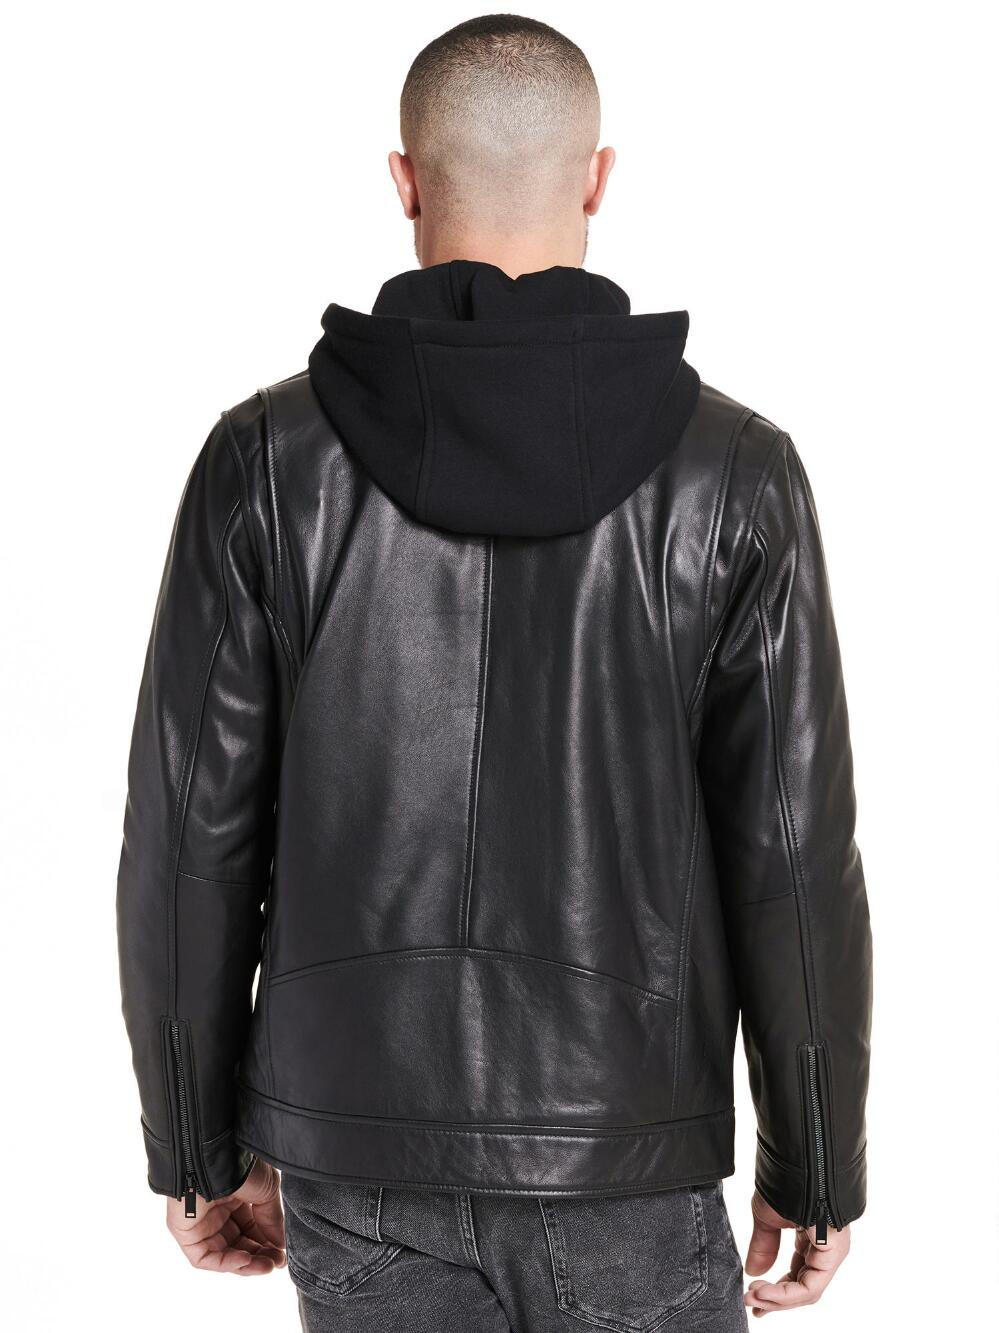 Full-Zip Faux-Leather Jacket w/ Removable Hood - Get Custom Leather Jackets